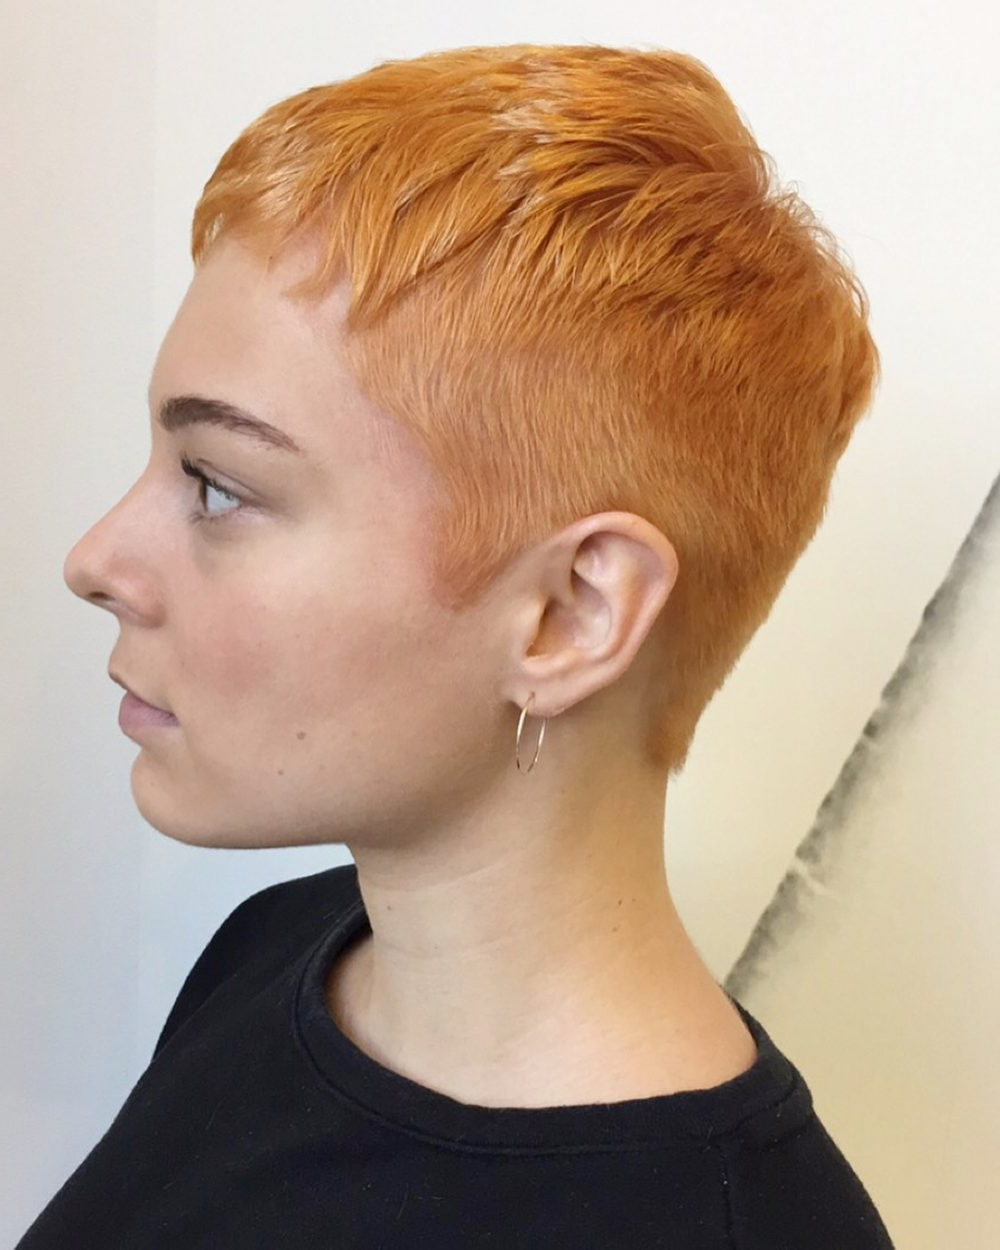 27 Very Short Haircuts You Have To See In 2018 Within Super Short Hairstyles For Black Women (View 6 of 25)